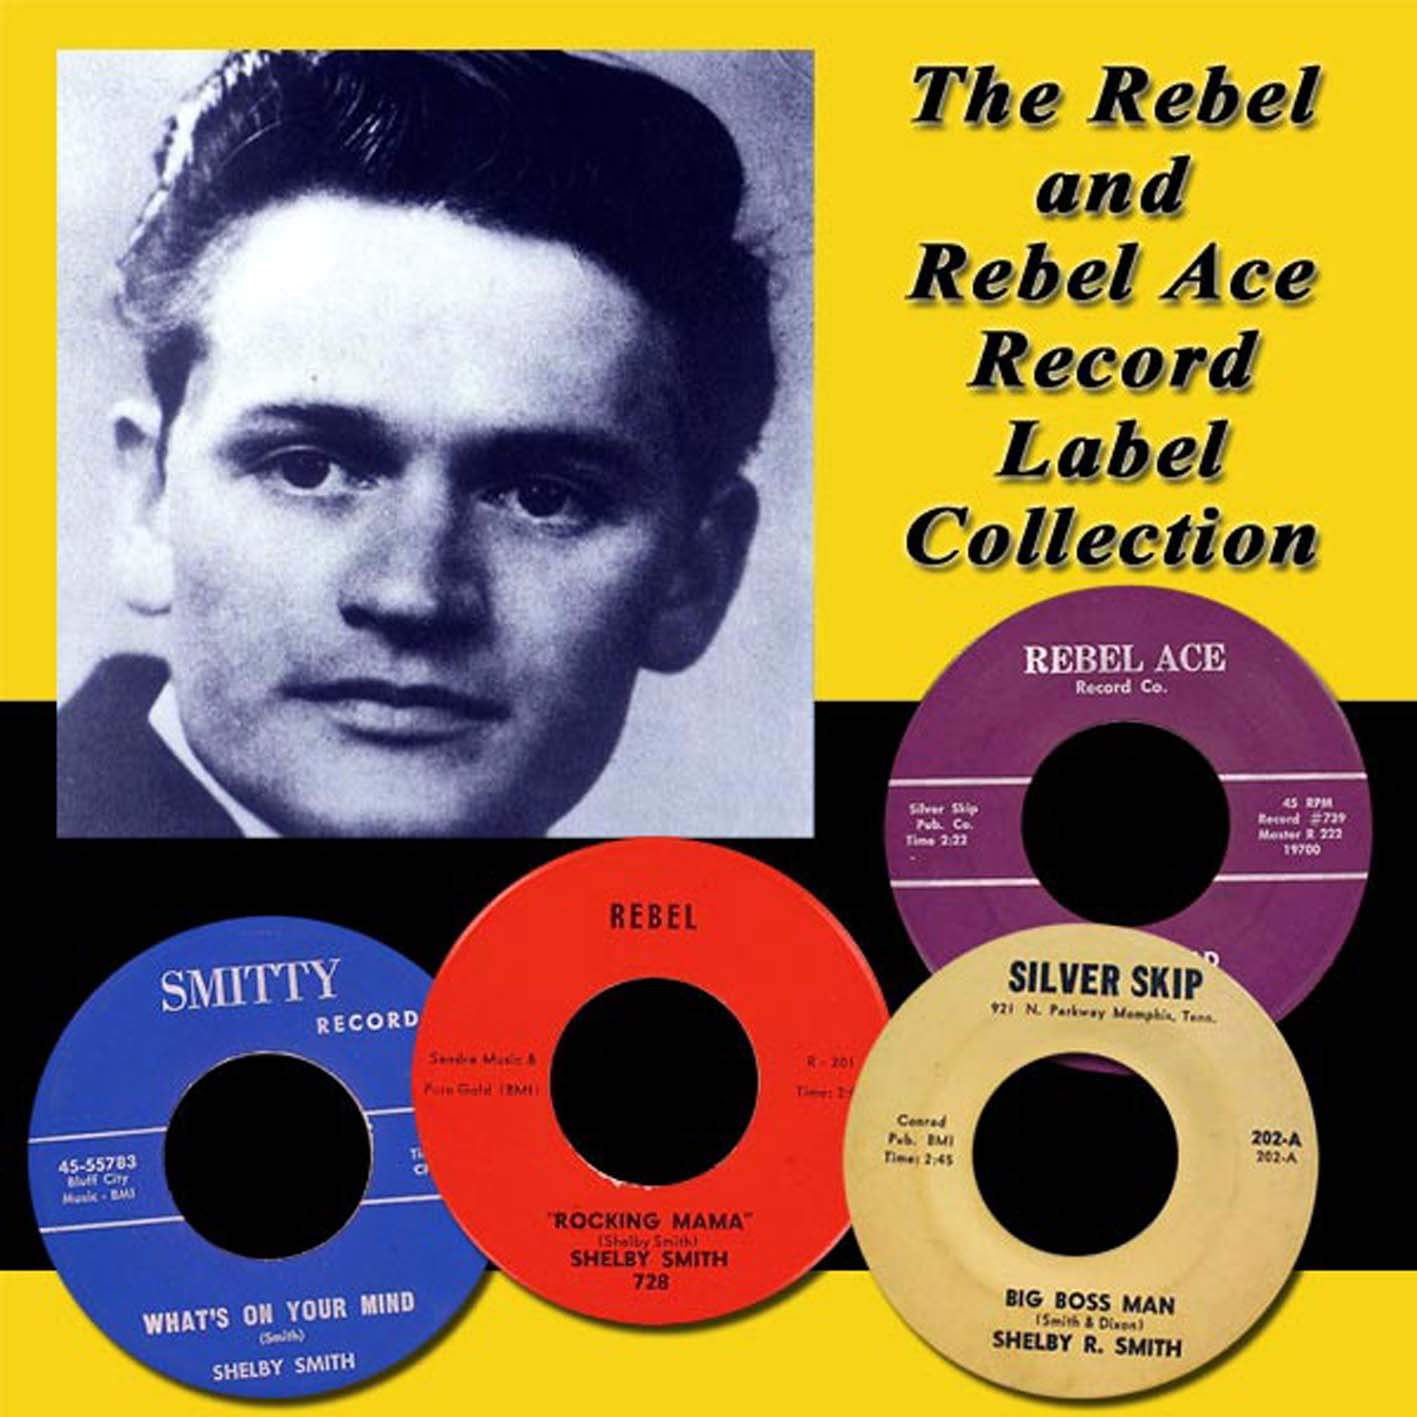 Rock Music Download: The Rebel And Rebel Ace Record Label